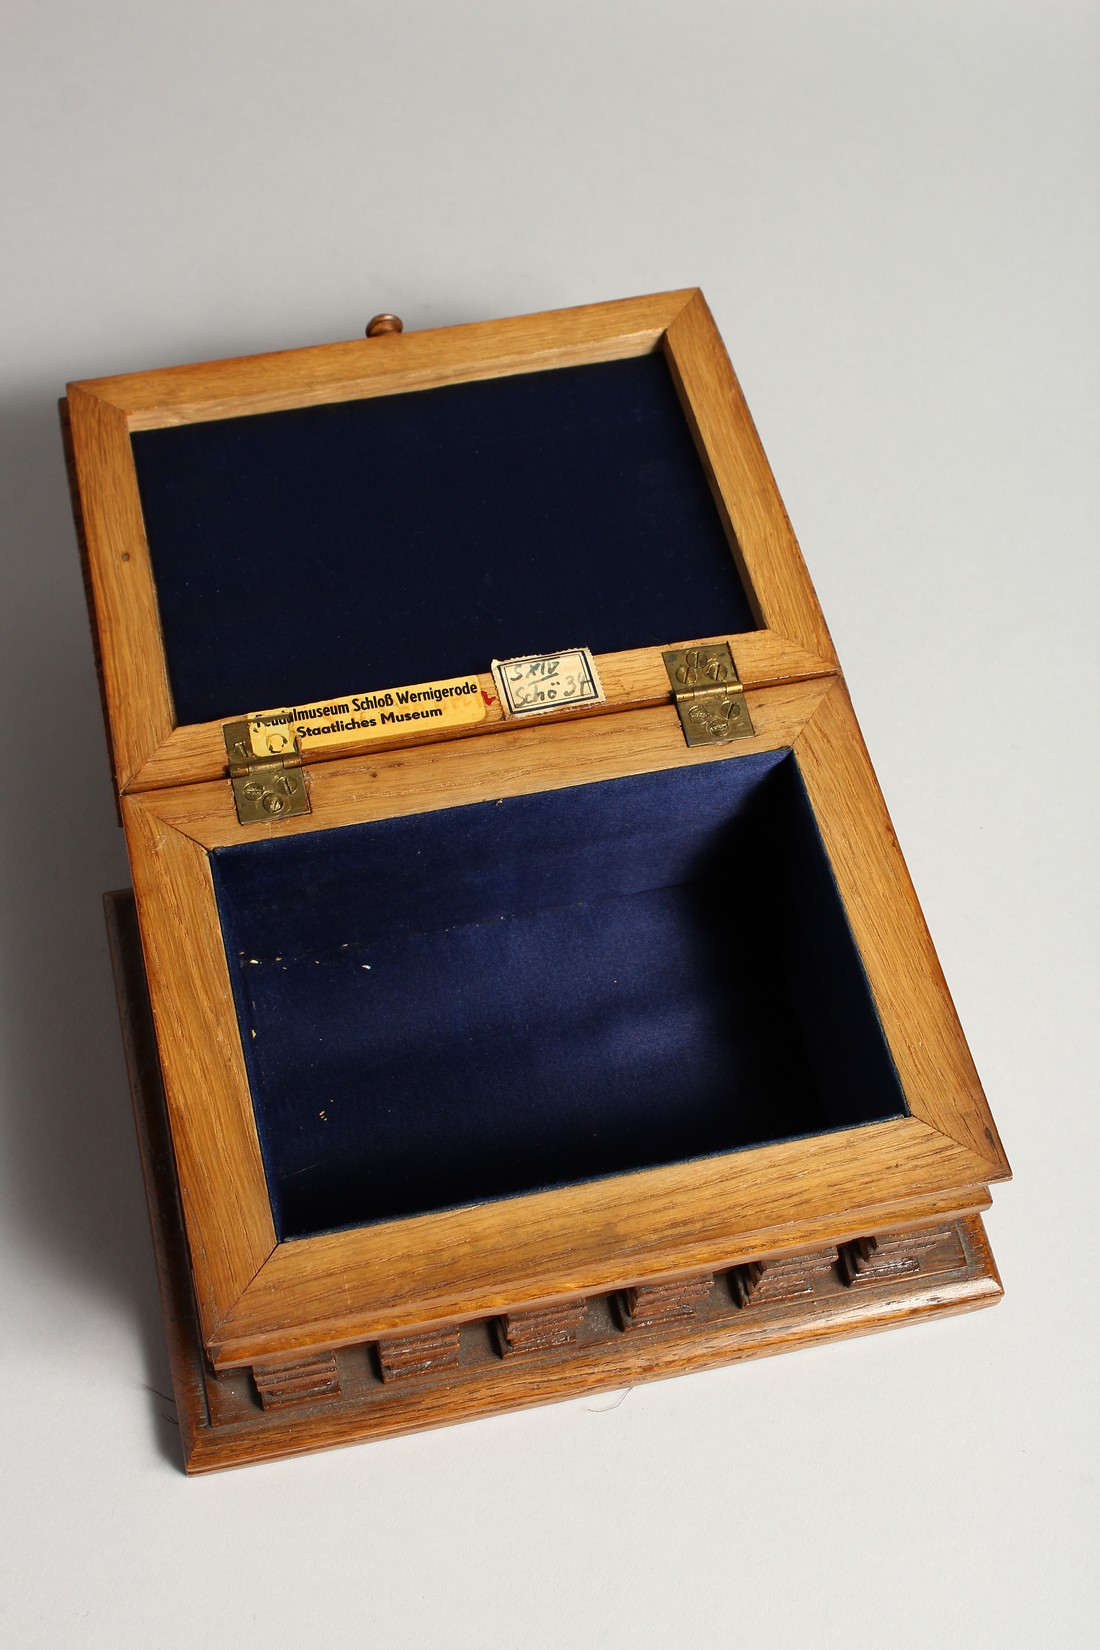 AN OAK CASKET with a silver plaque, OTTO VON BISMARCK, and paper label, ST AATLICHES MUSEUM. 9ins - Image 6 of 7